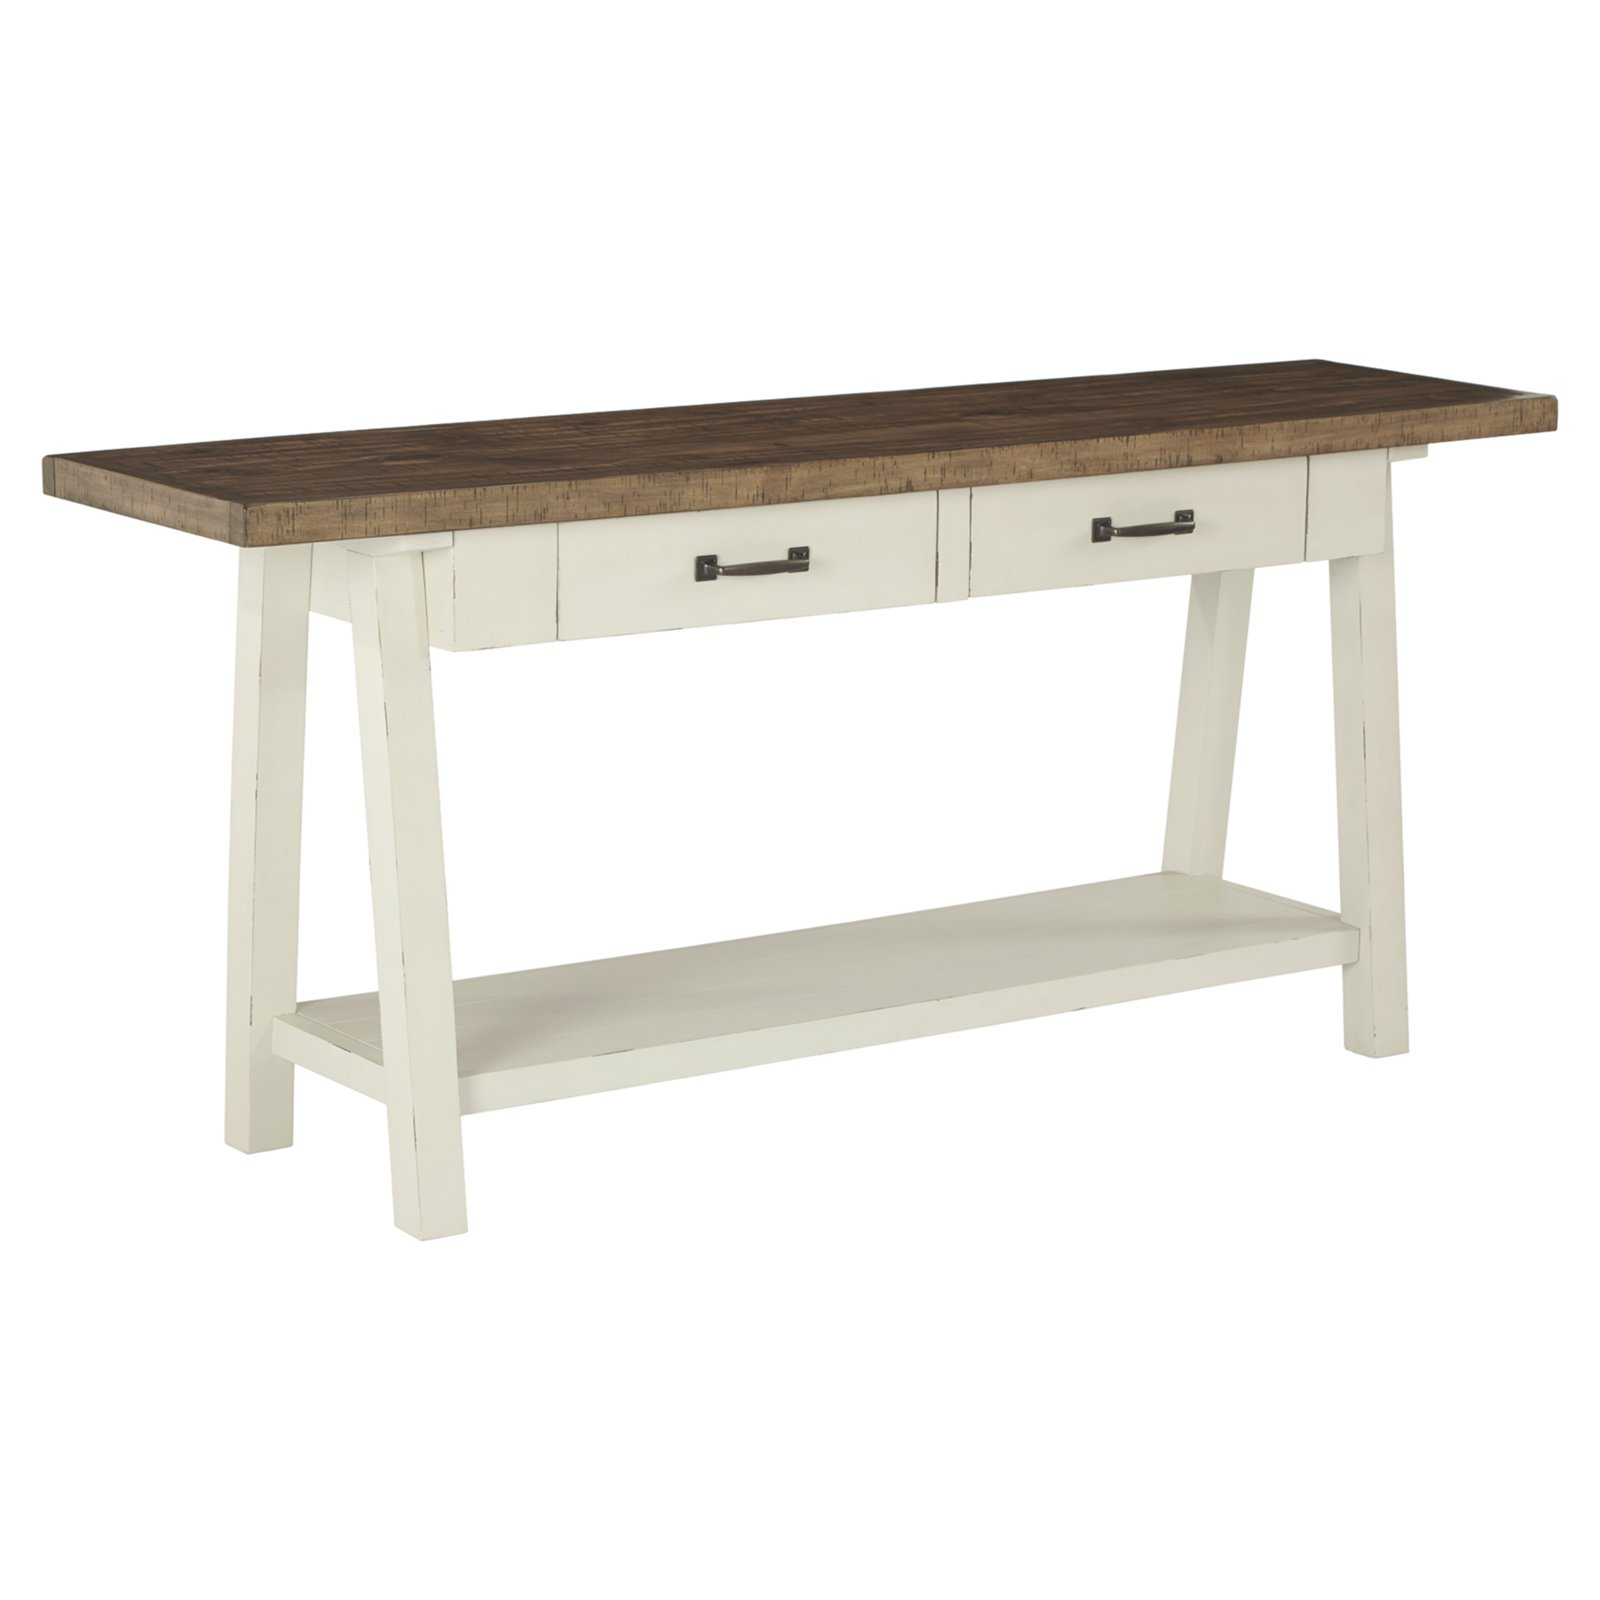 Signature Design by Ashley Stownbranner 72 in. Sofa Table